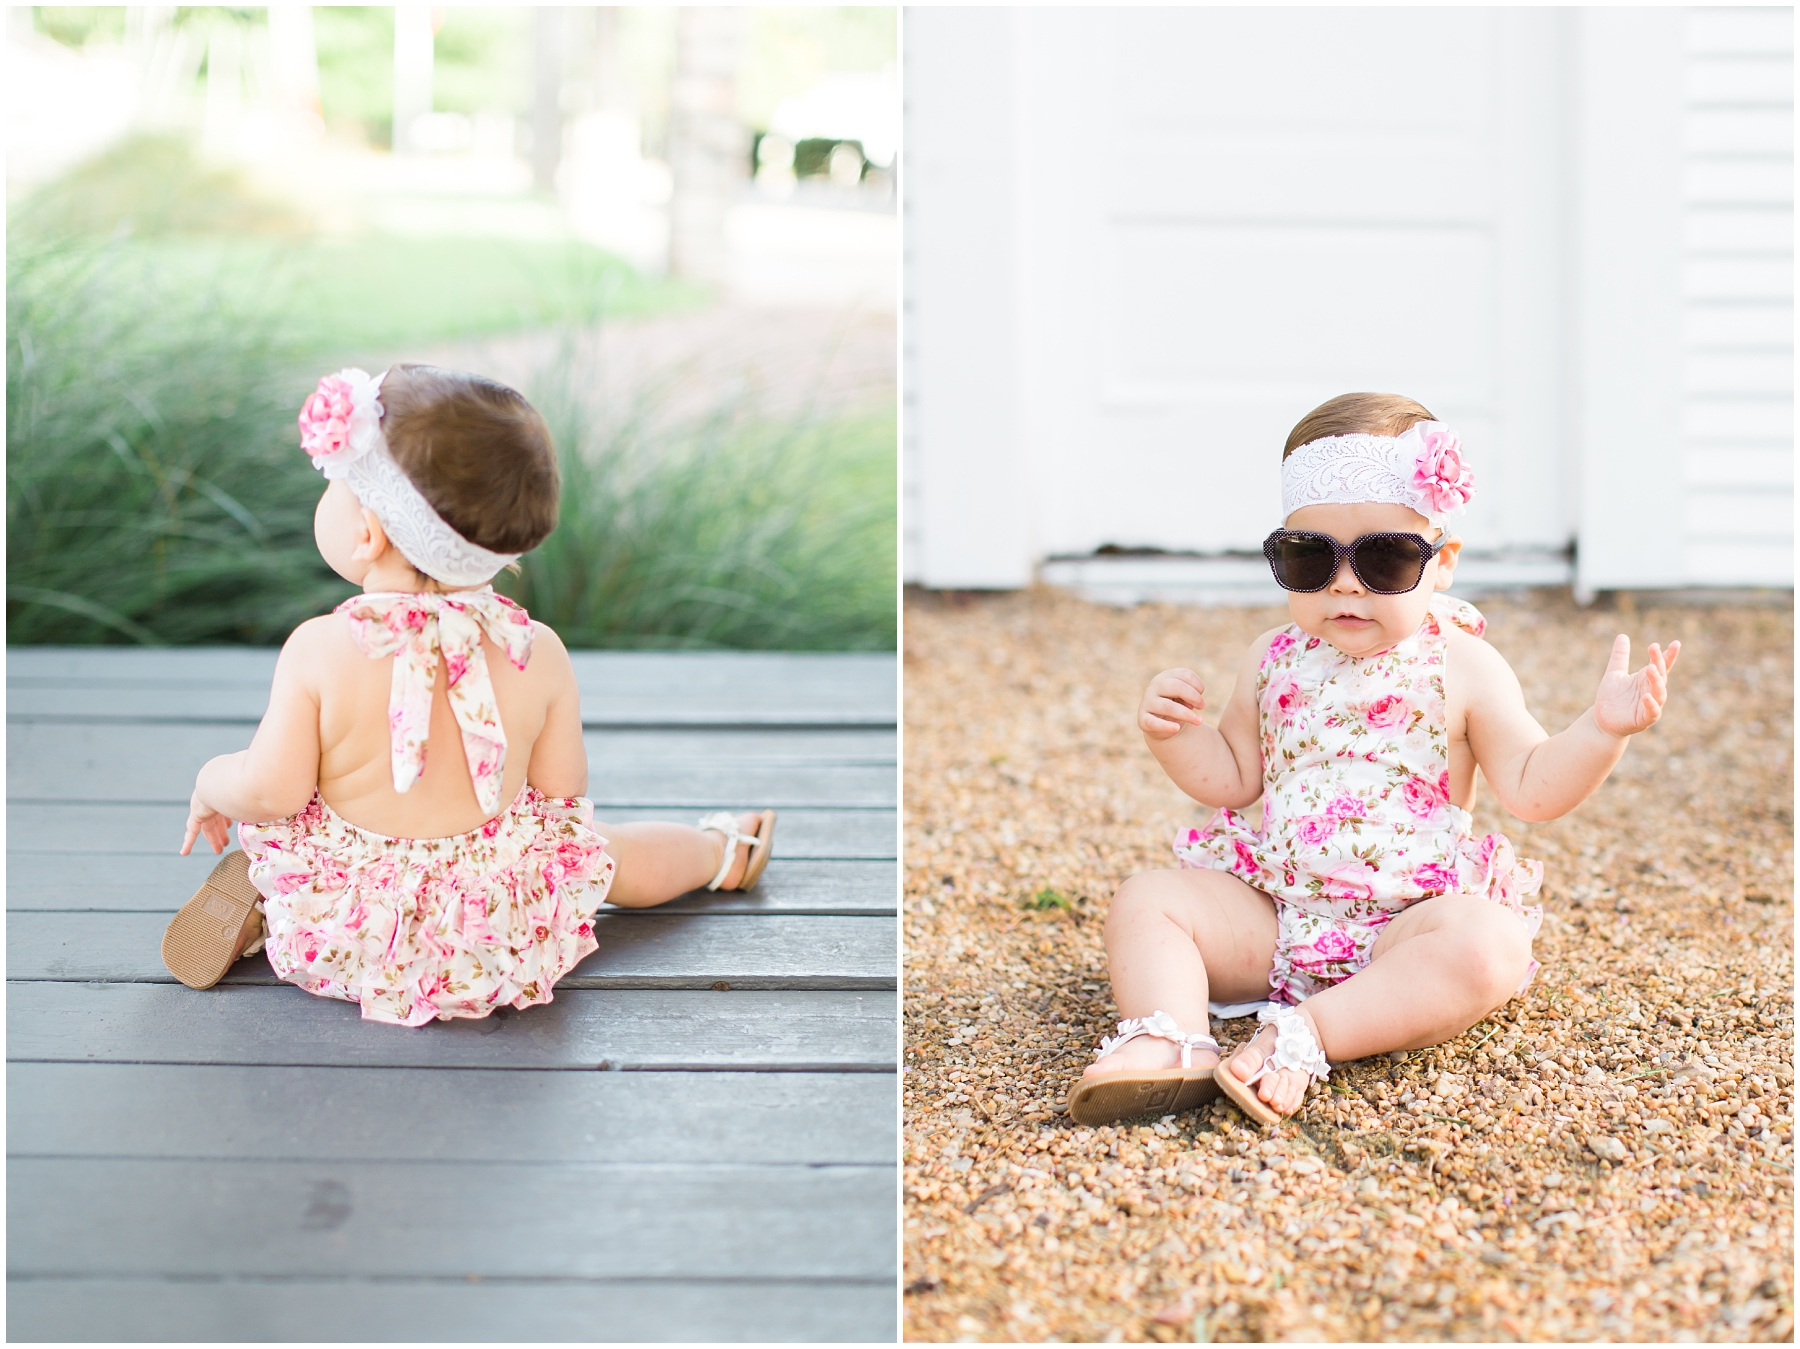 Katy Tx Child Photography - 1 year old 14